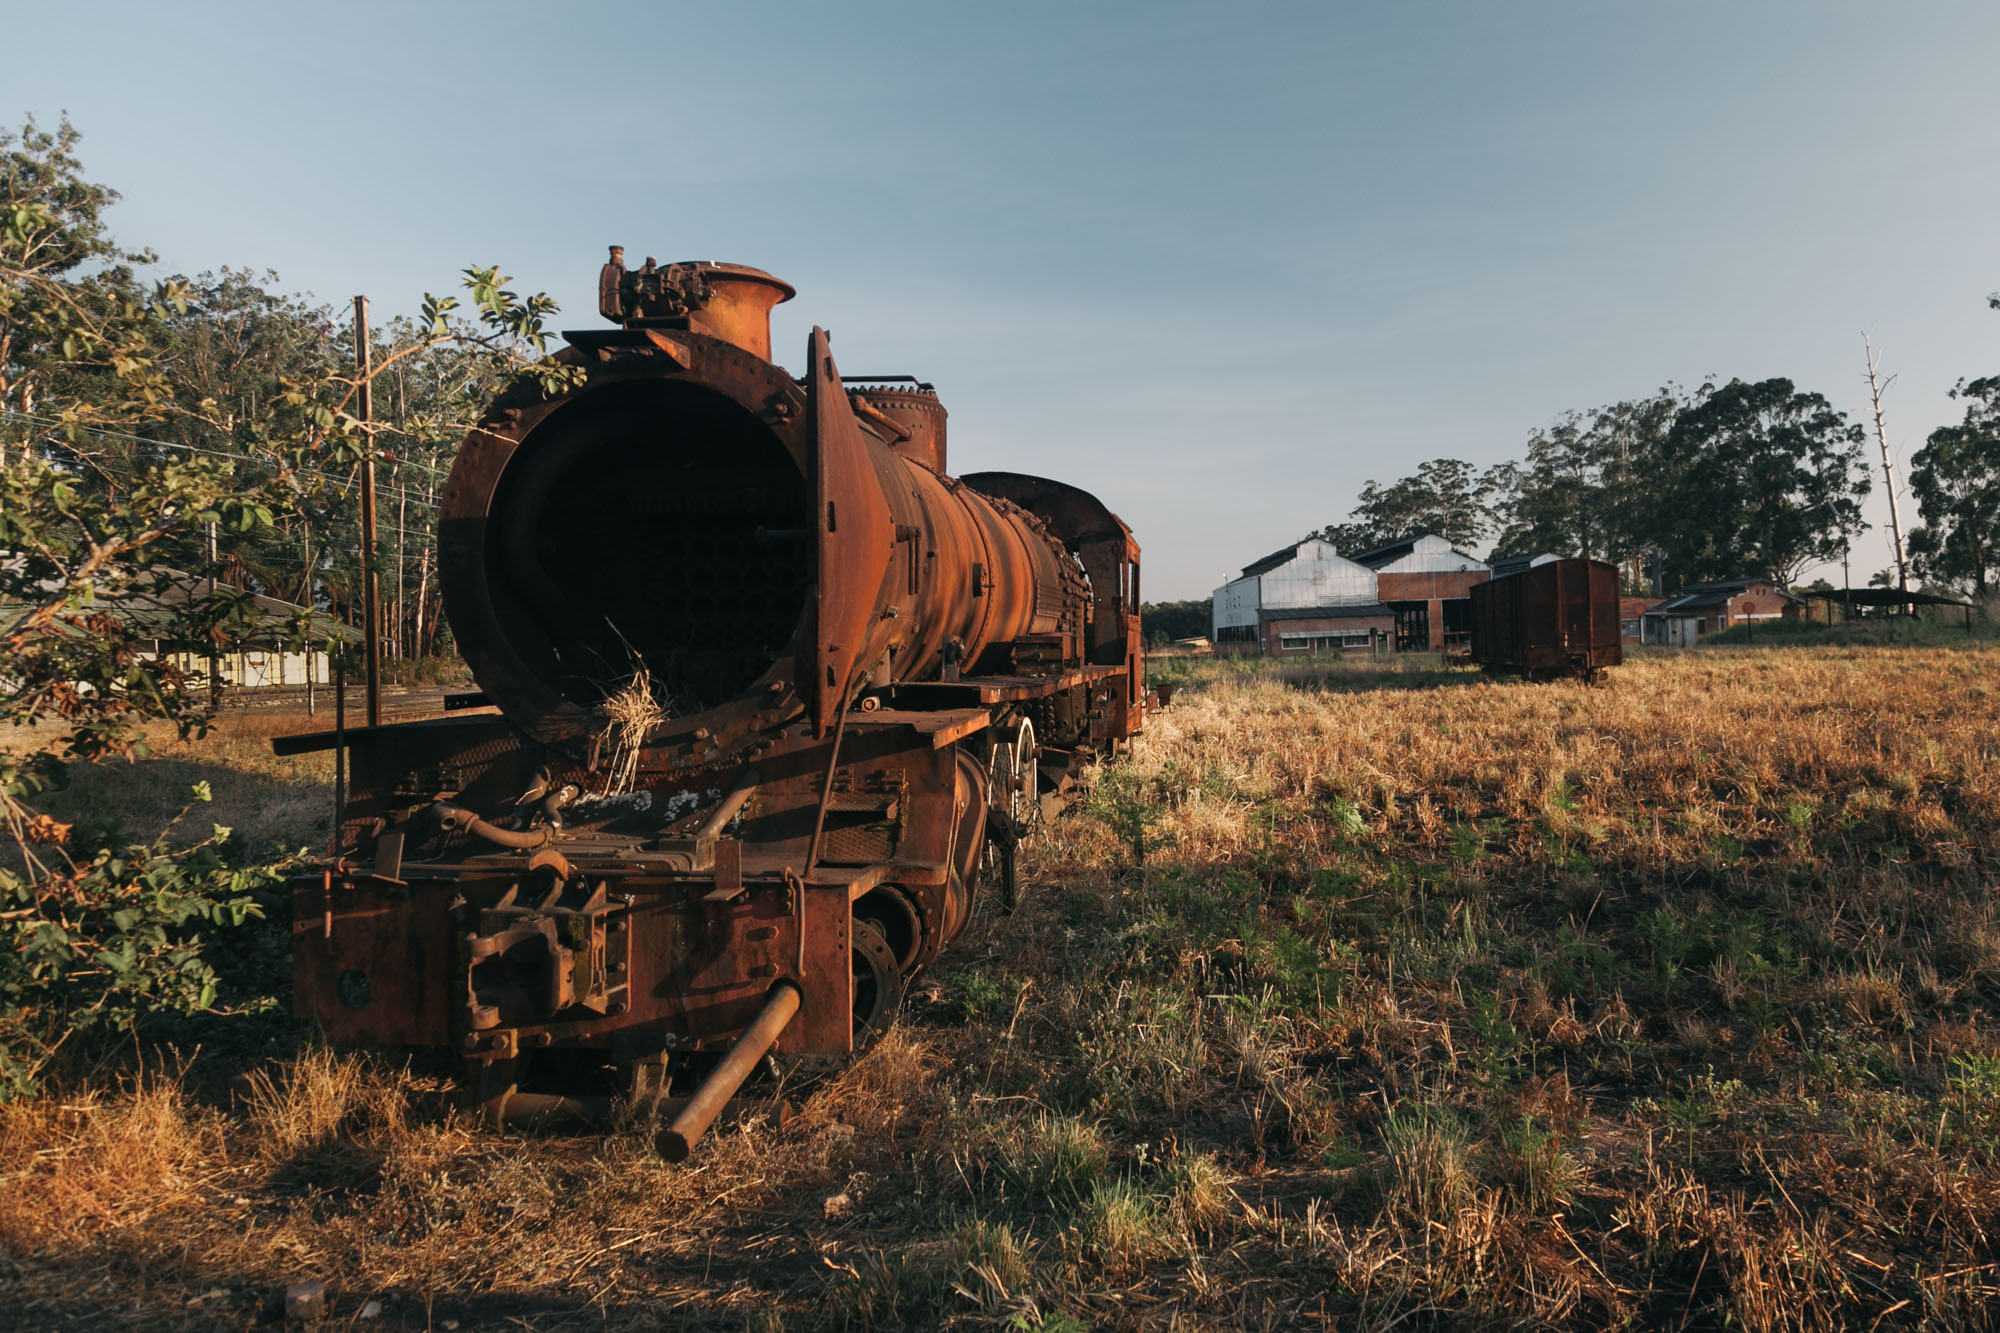 An abandoned steam train left from the colonial times at Mutshatsha.